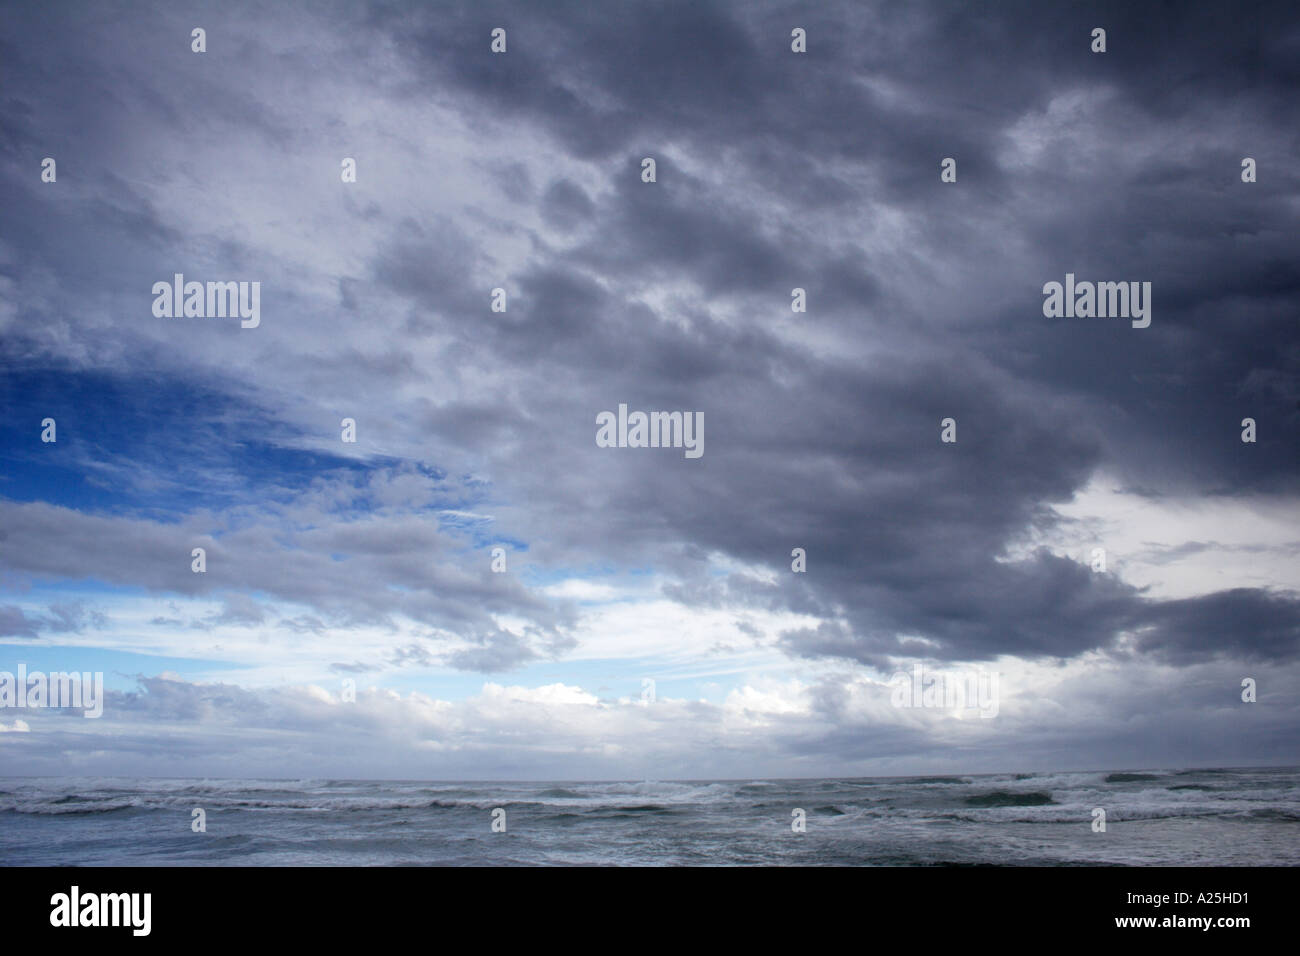 Angry sea and black thunder storm clouds background Stock ...